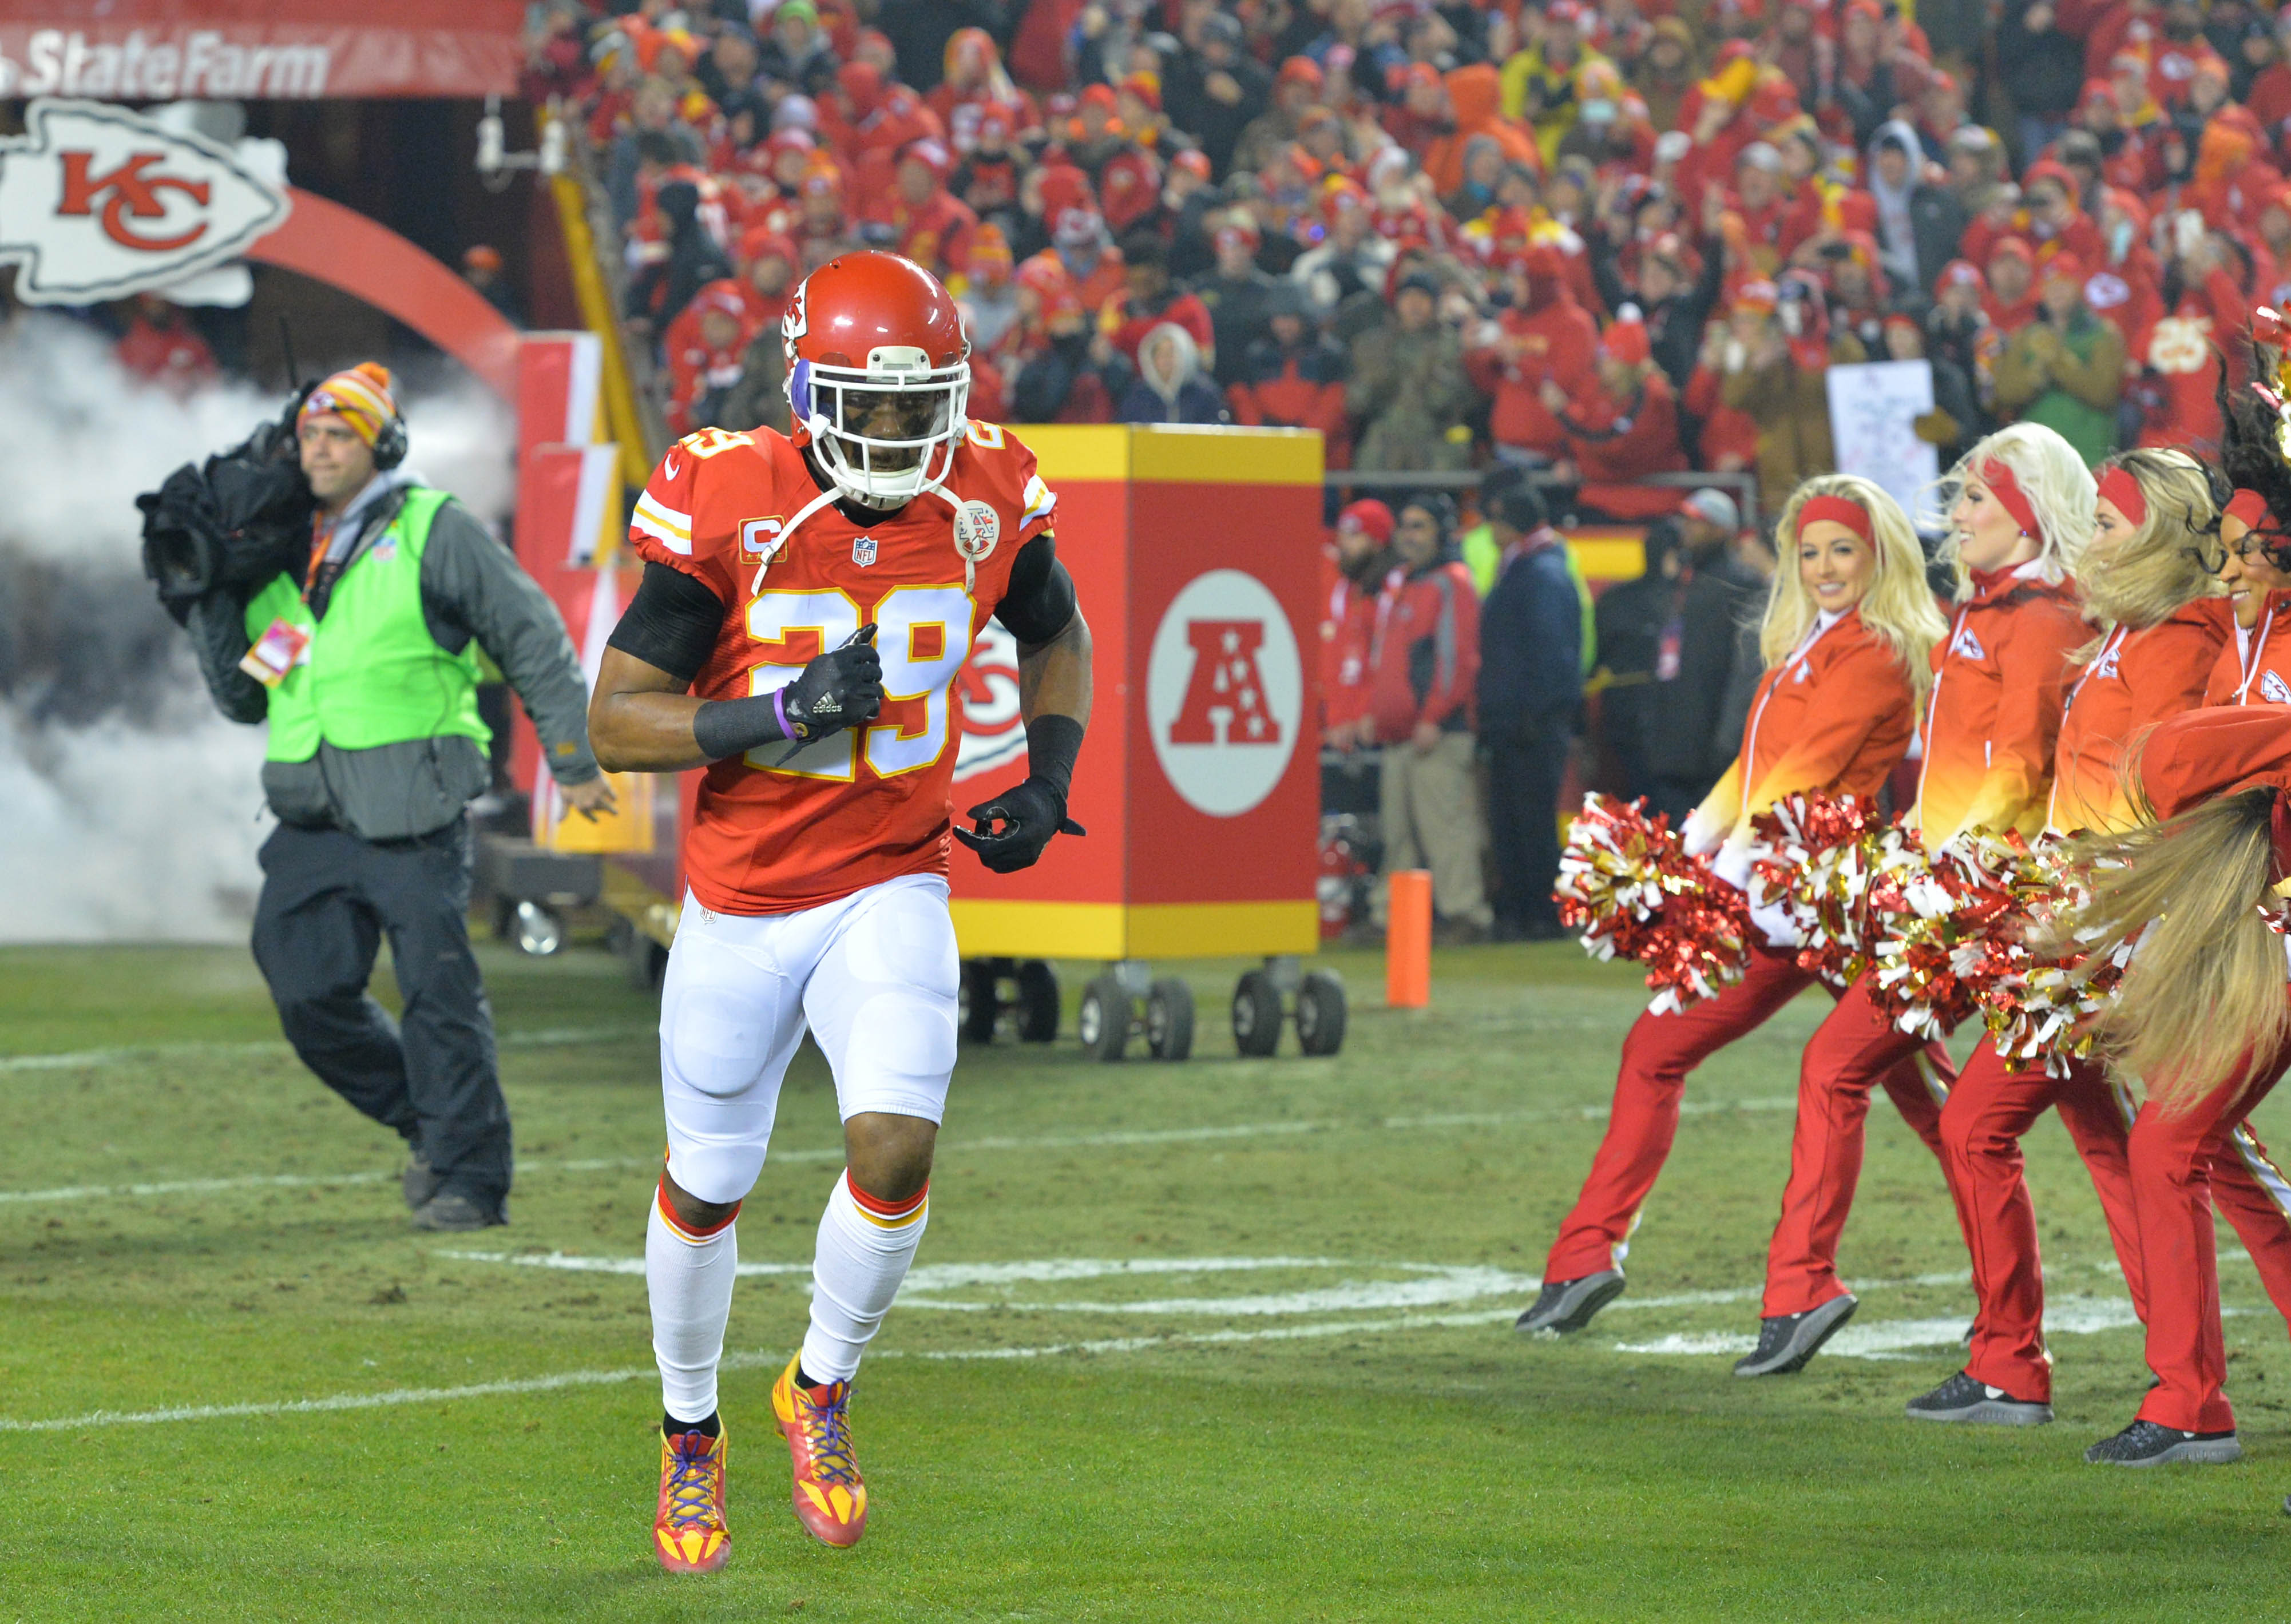 9839452-nfl-afc-divisional-pittsburgh-steelers-at-kansas-city-chiefs